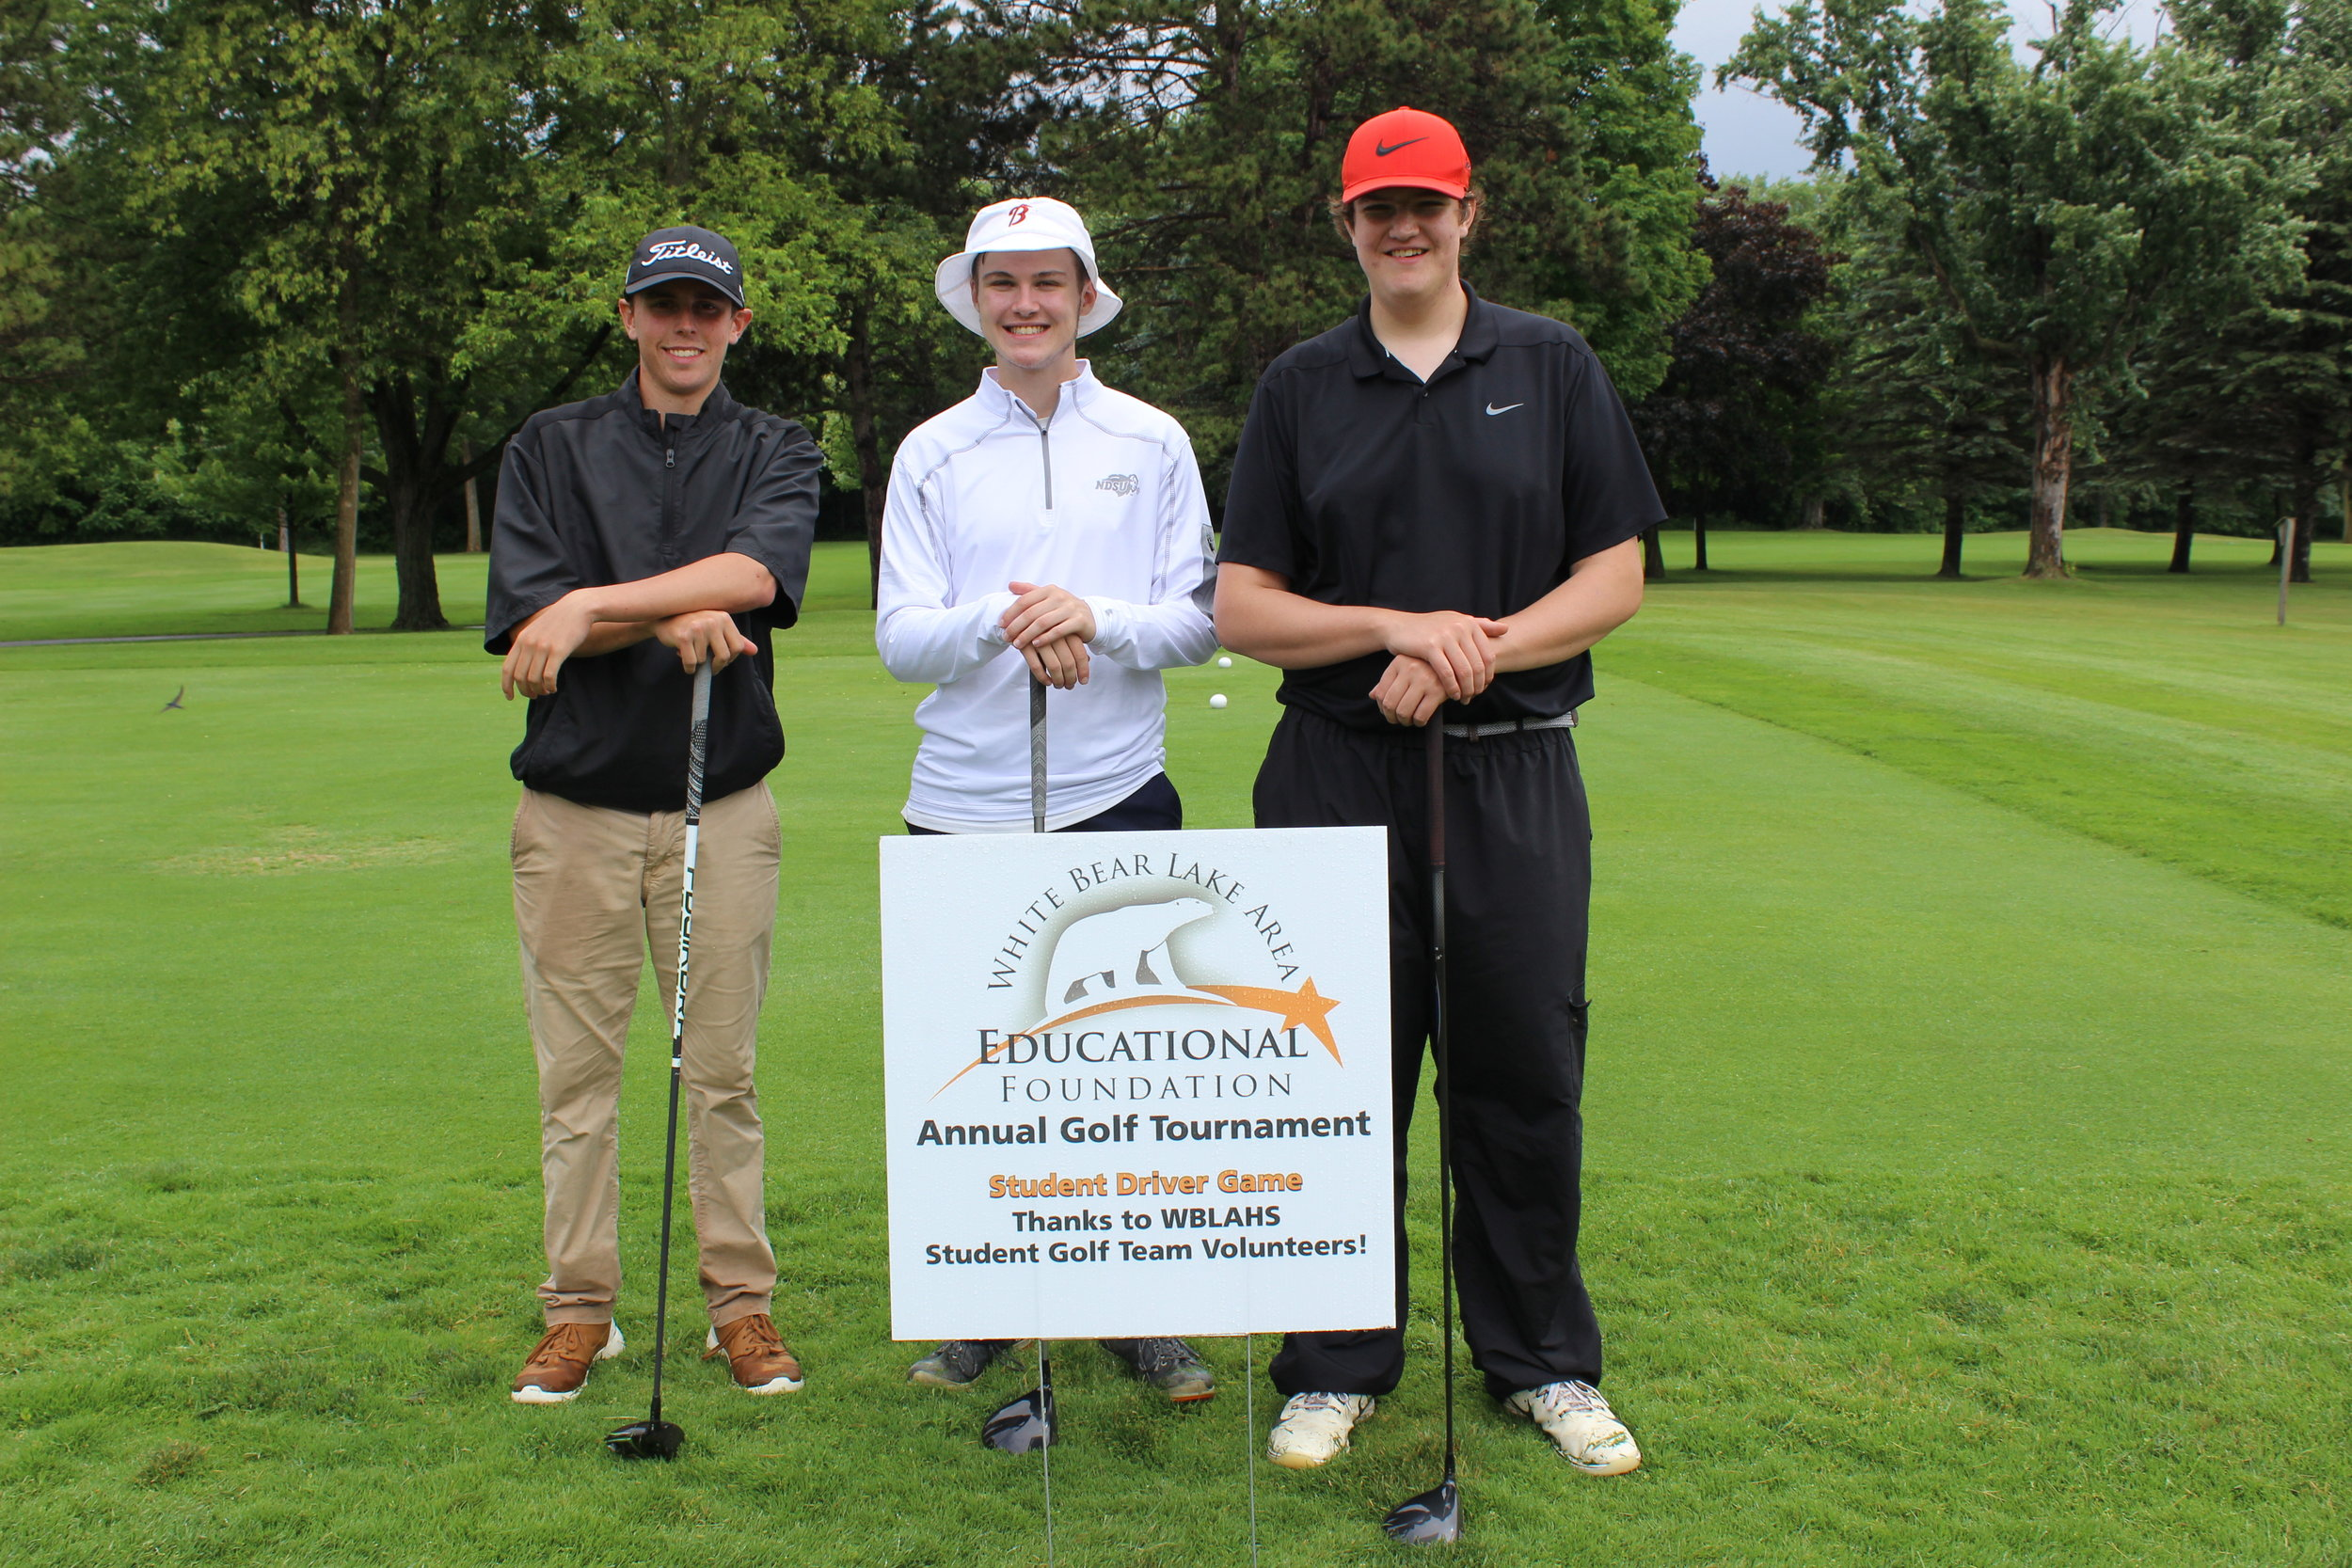 WBLAHS Boys Golf Team members - Jake Paulson, Aaren Schmid, Mark Vowels.JPG